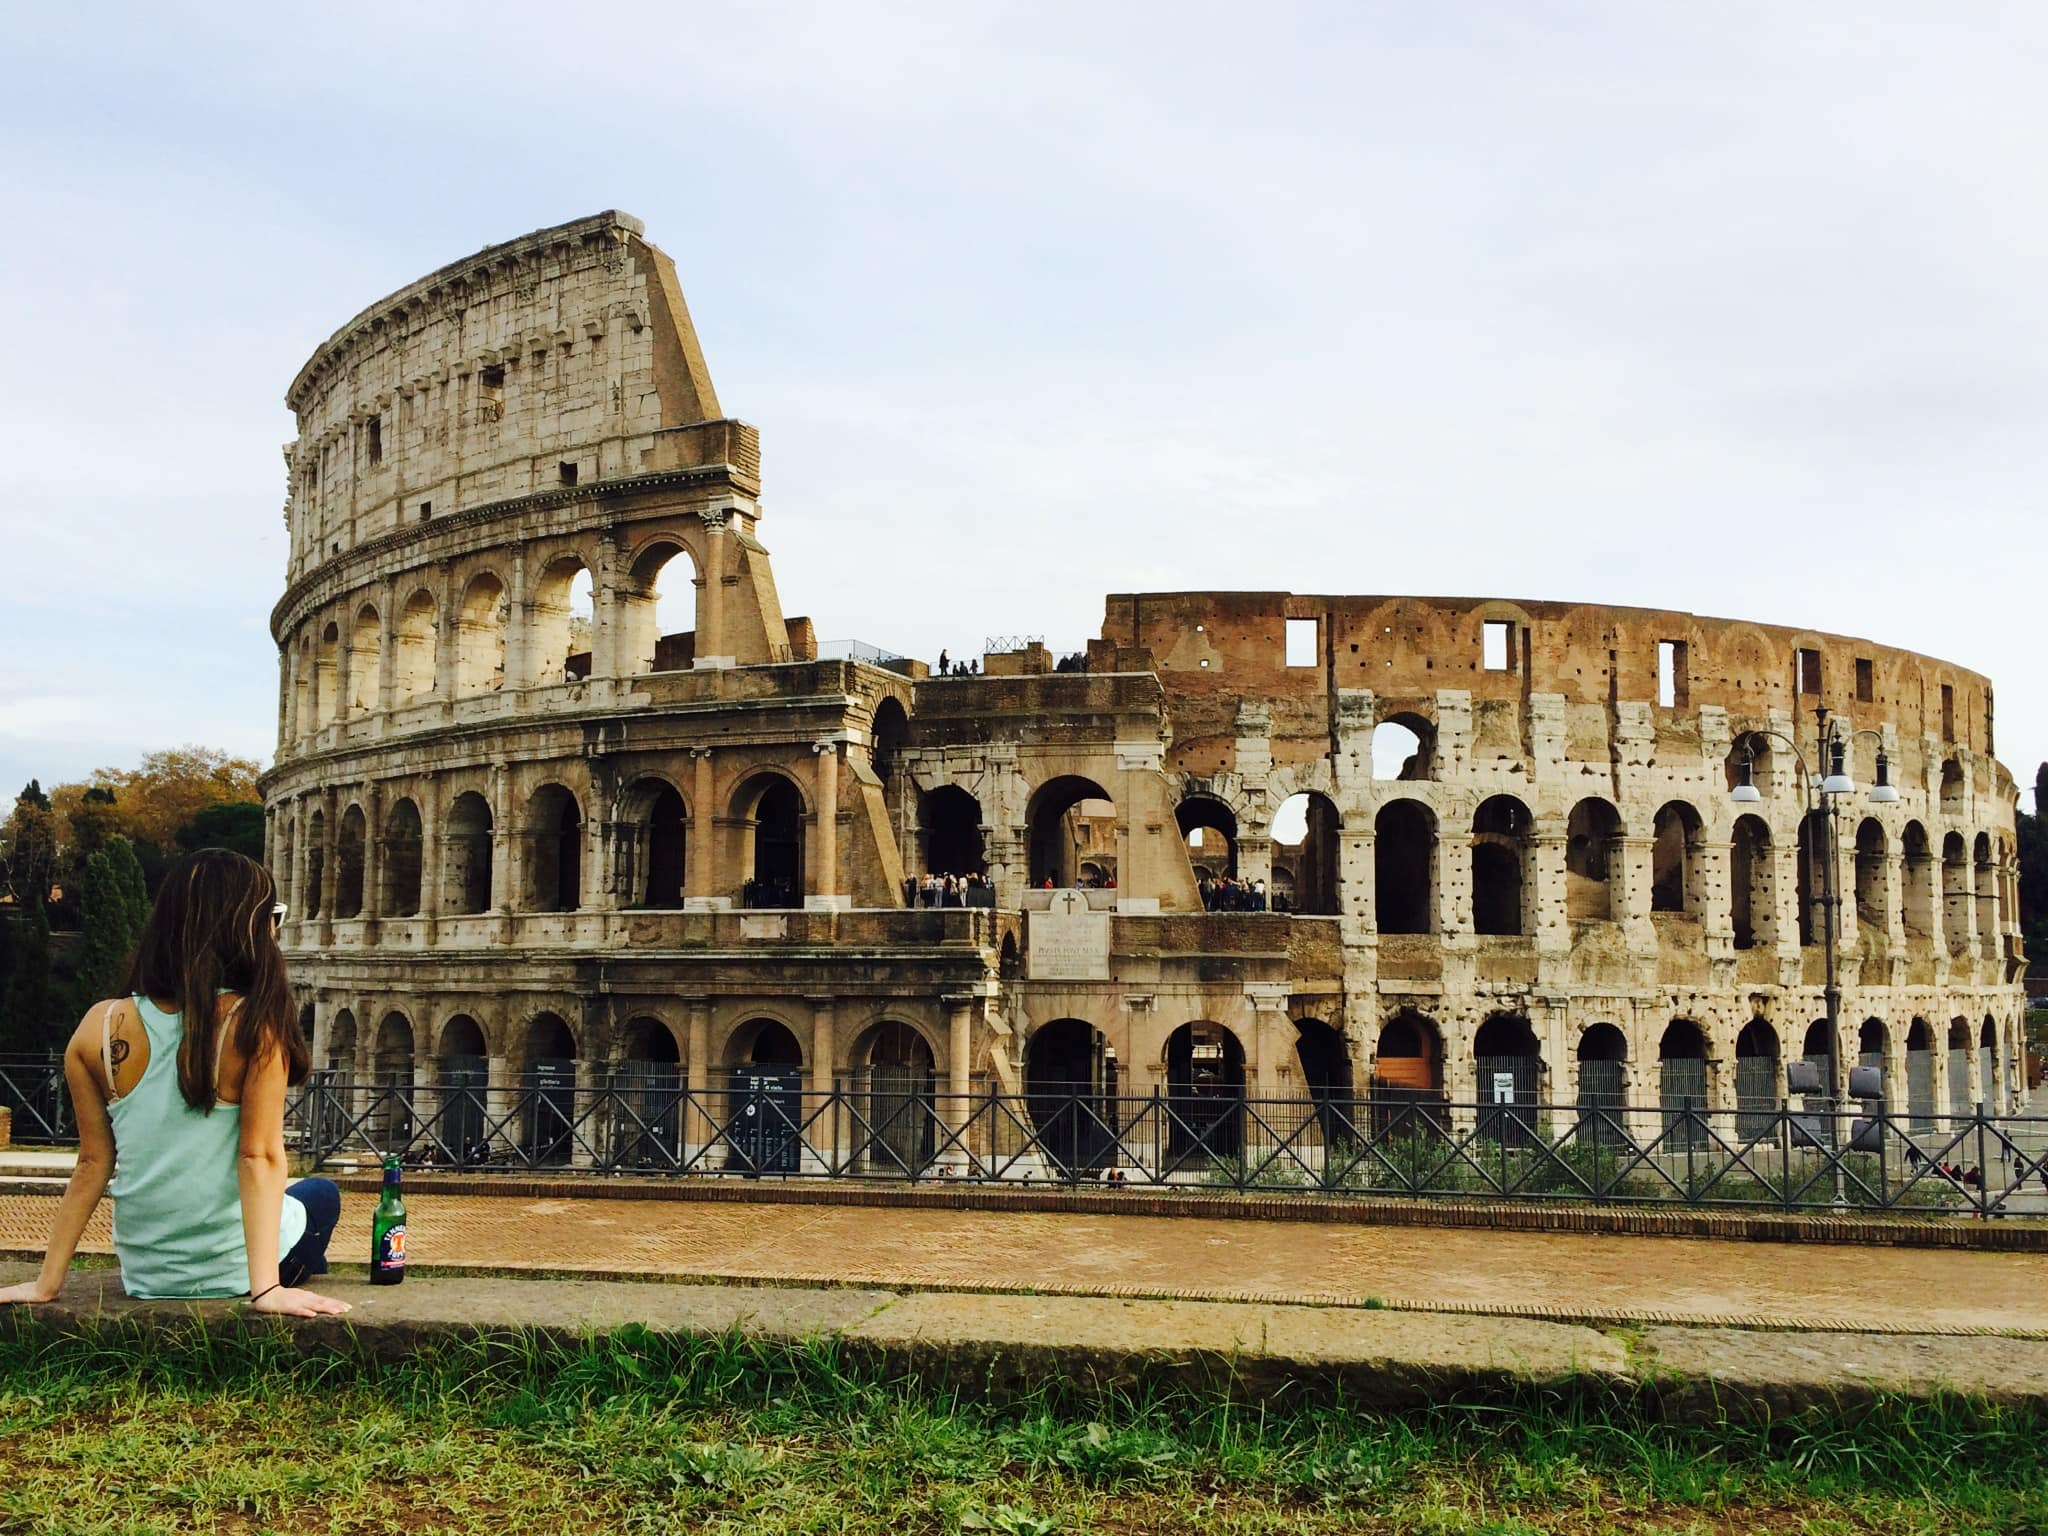 Jackie at the Colosseum in Rome